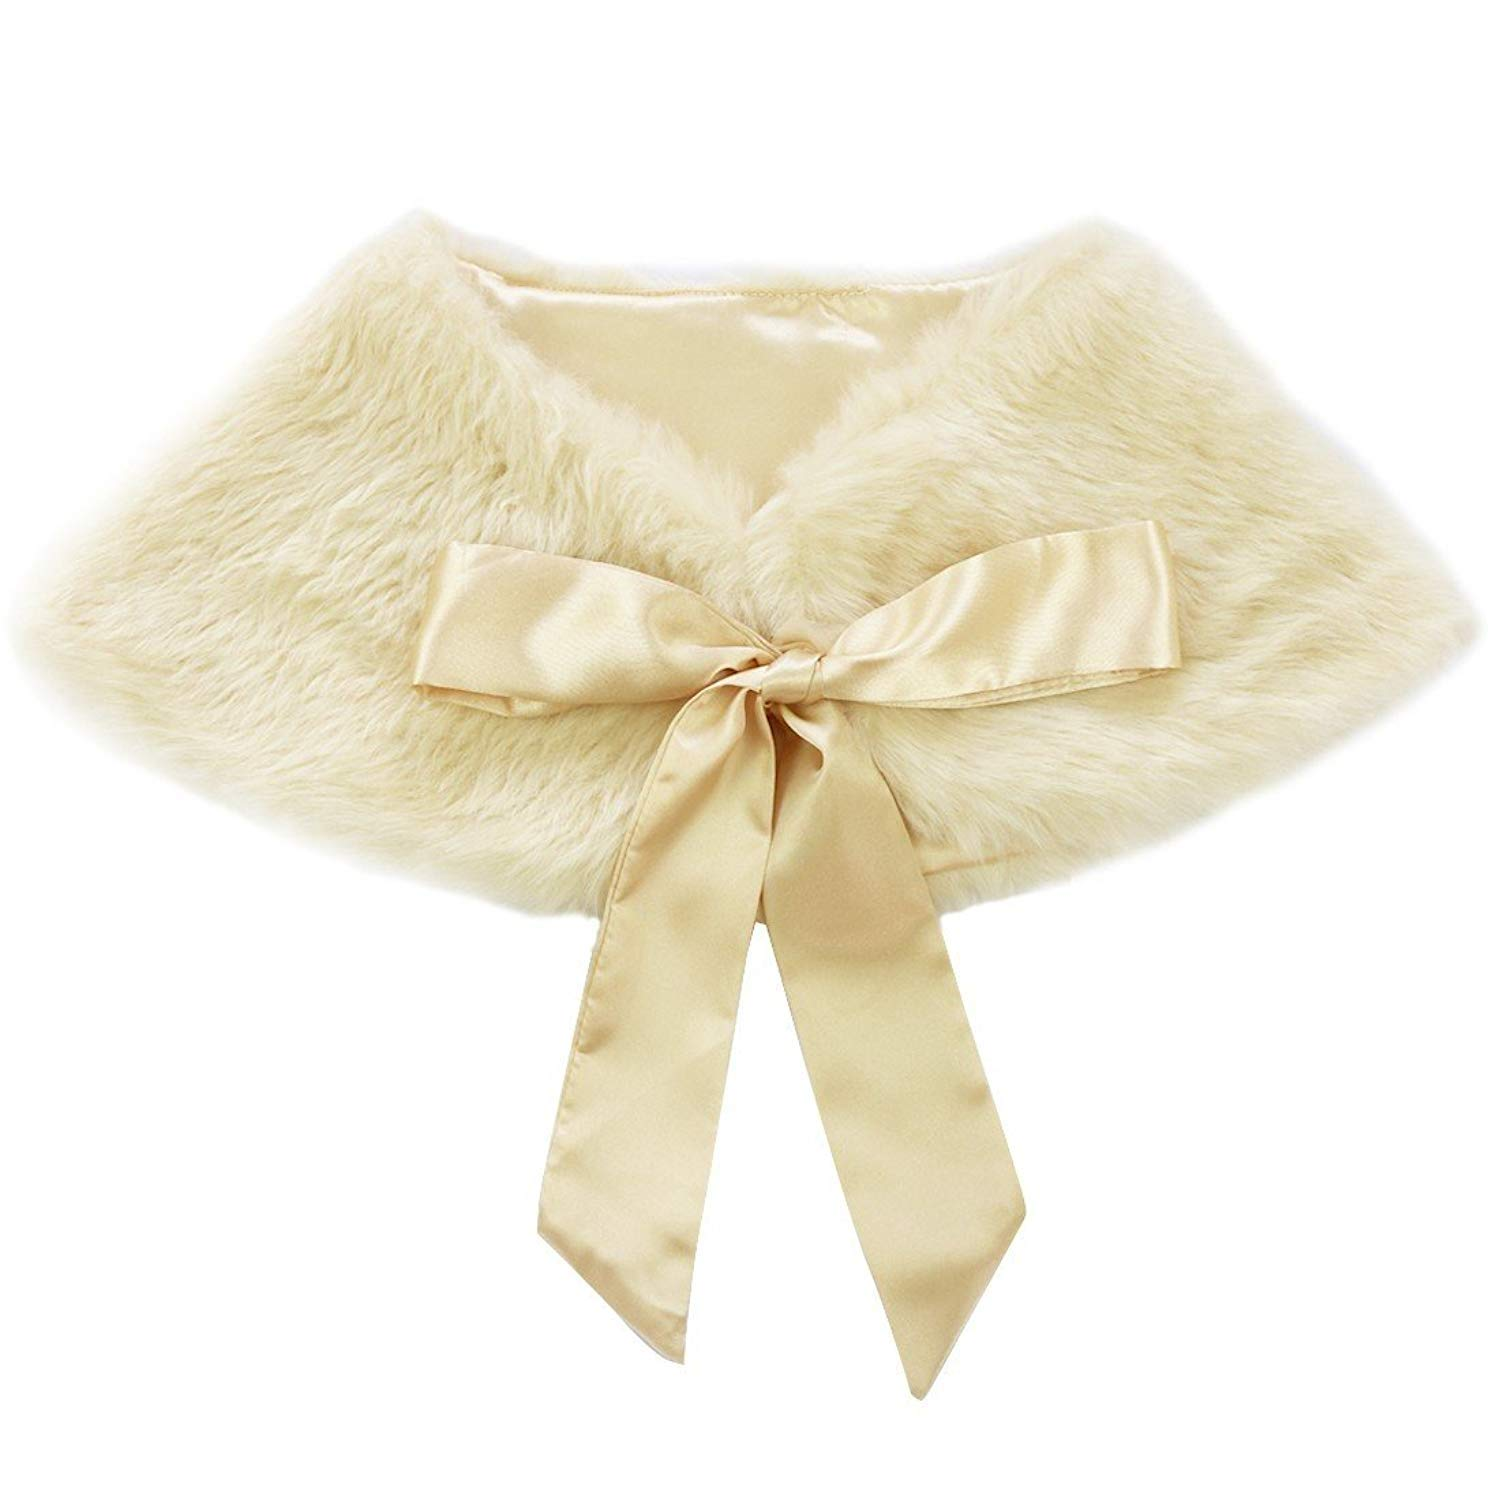 Vicokity Flower Girls Winter Faux Fur Ribbon Ties Shawl Wraps Cape Stole Princess Shoulder Cape Bolero Shrug (Champagne)